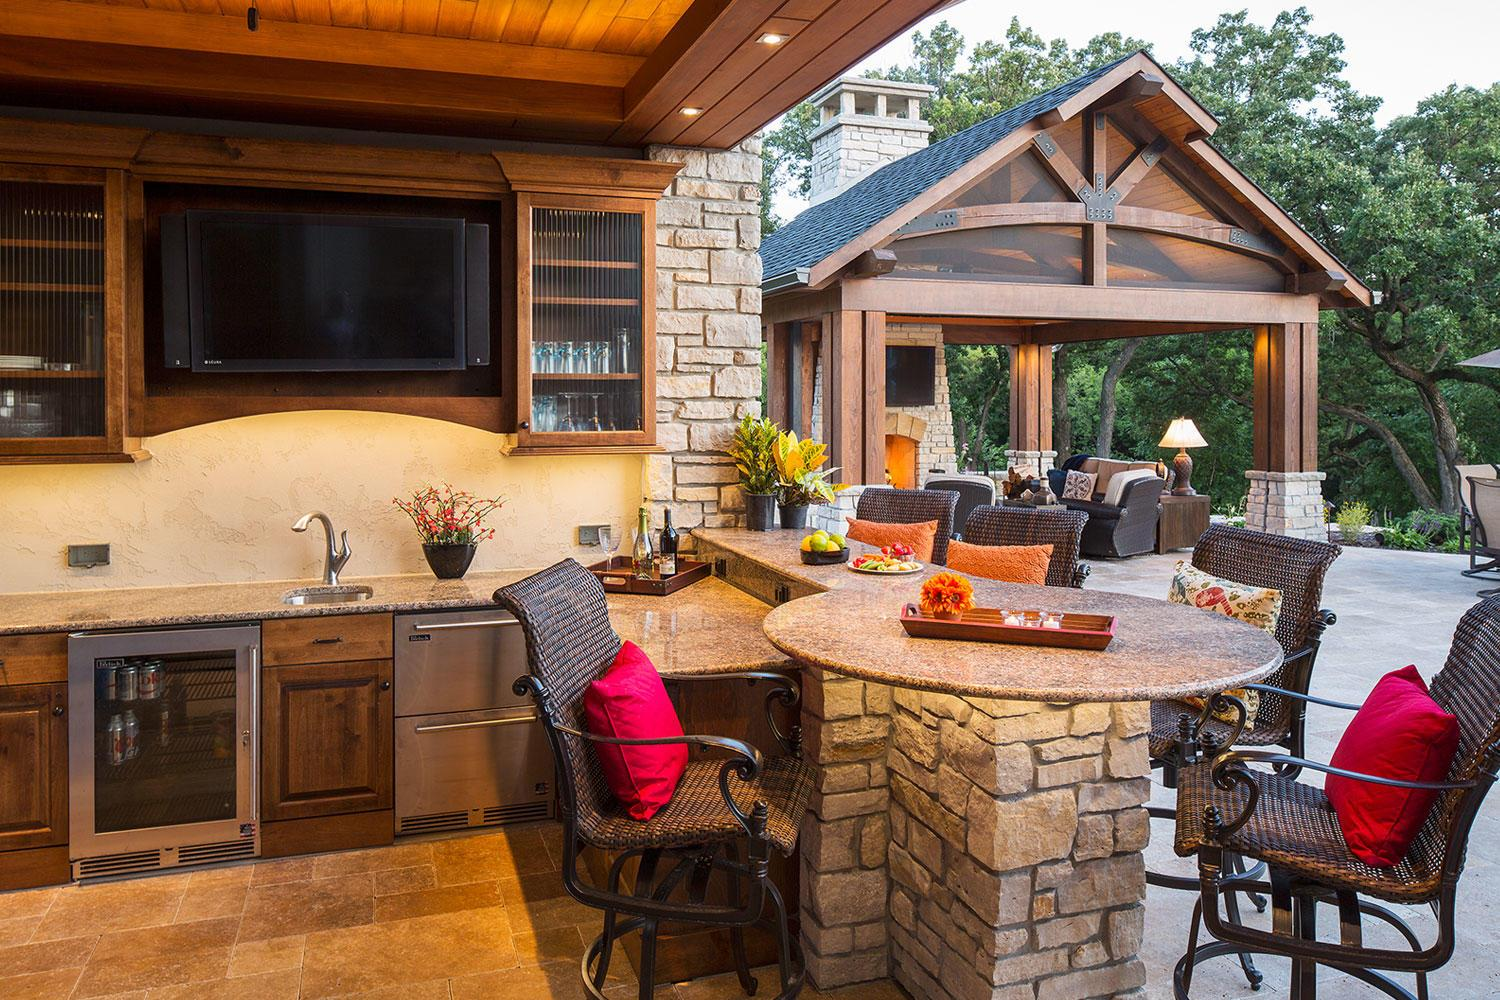 Outdoor Bar with TV, Beverage Cooler, and Sink. Pool house outdoor living room with fireplace and television